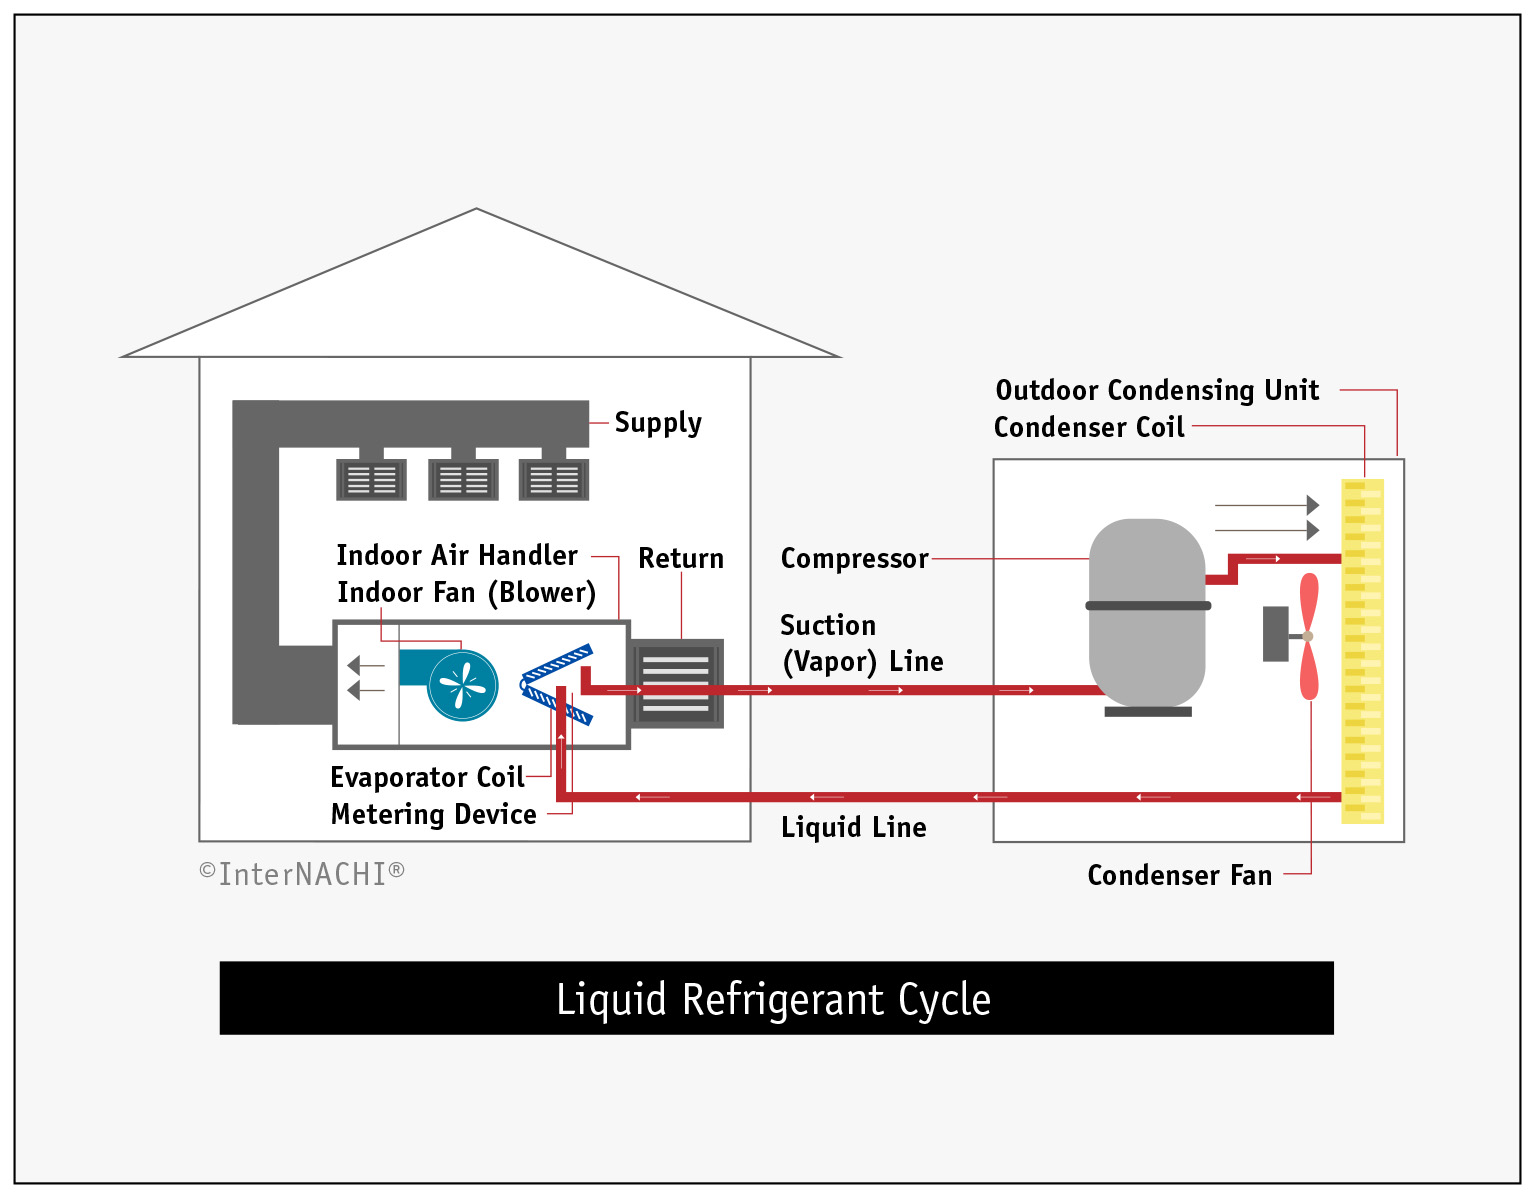 Liquid Refrigerant Cycle